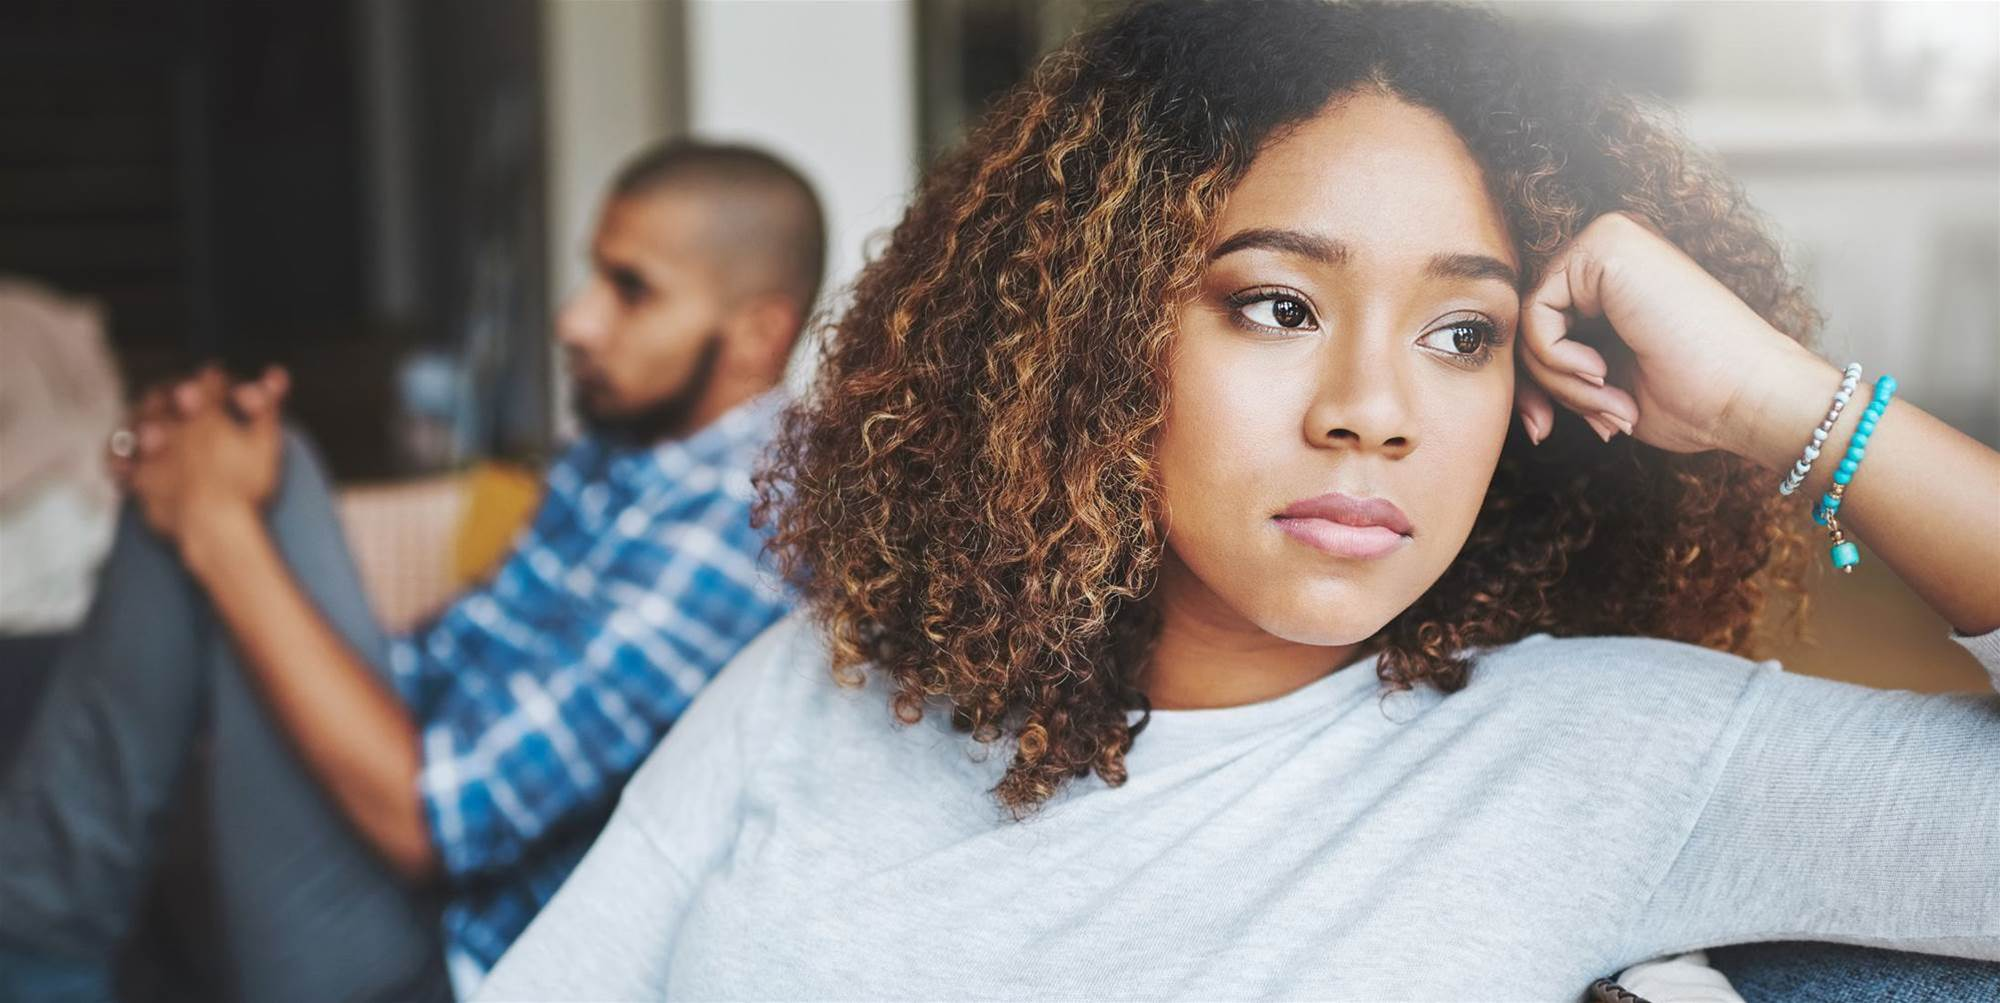 11 Warning Signs Your Relationship Is Completely Toxic